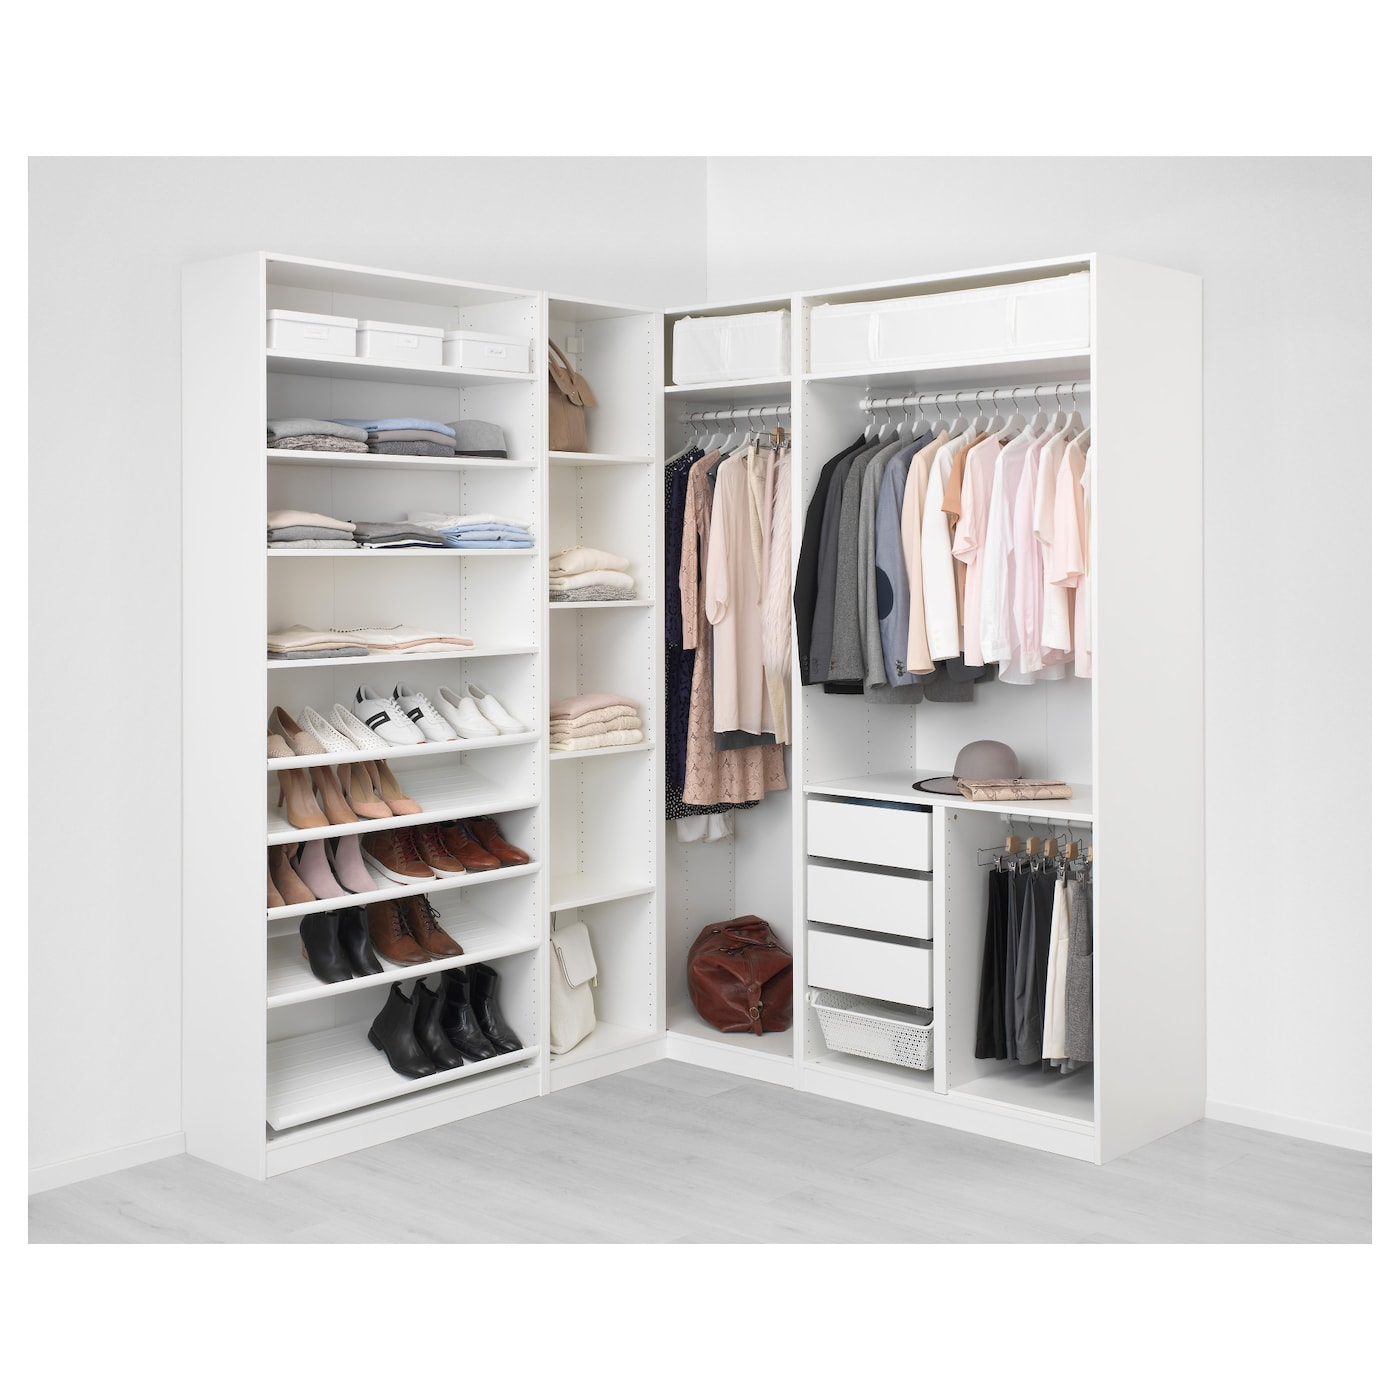 pax corner wardrobe white tyssedal tyssedal glass 210 188x236 cm ikea. Black Bedroom Furniture Sets. Home Design Ideas